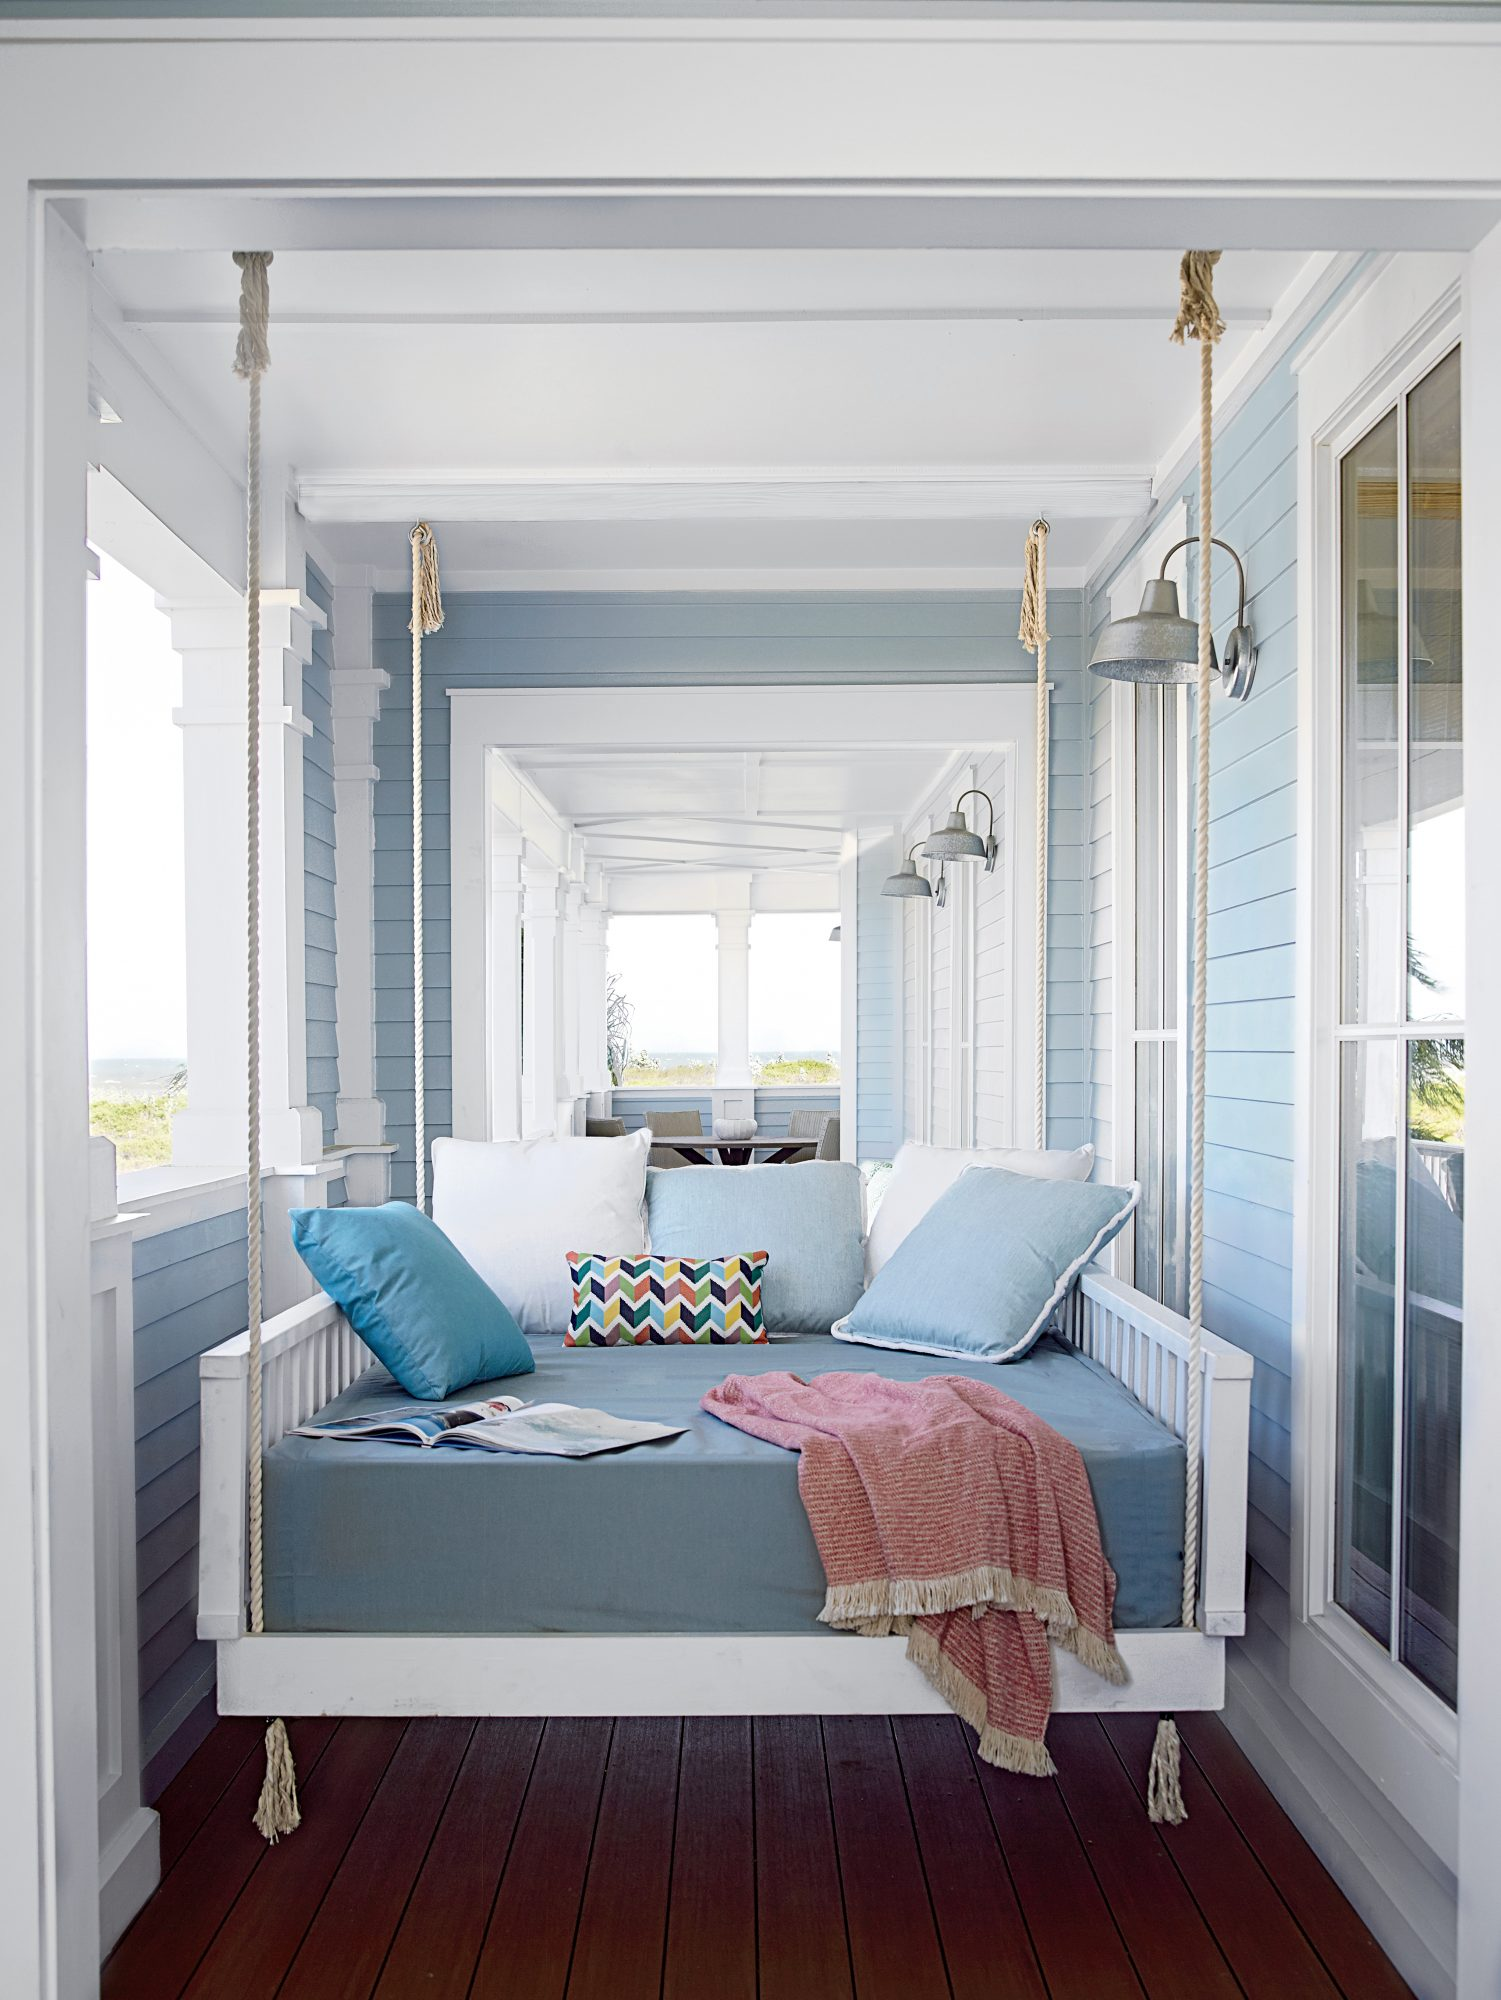 """One of my fondest memories is of sleeping on a hanging bed at my grandparents' fishing camp in Louisiana,"" says the owner of this Cedar Key, Florida, beach house. ""I wanted to re-create that here."" She and designer Melissa Rosenberg had a Houston craftsm"